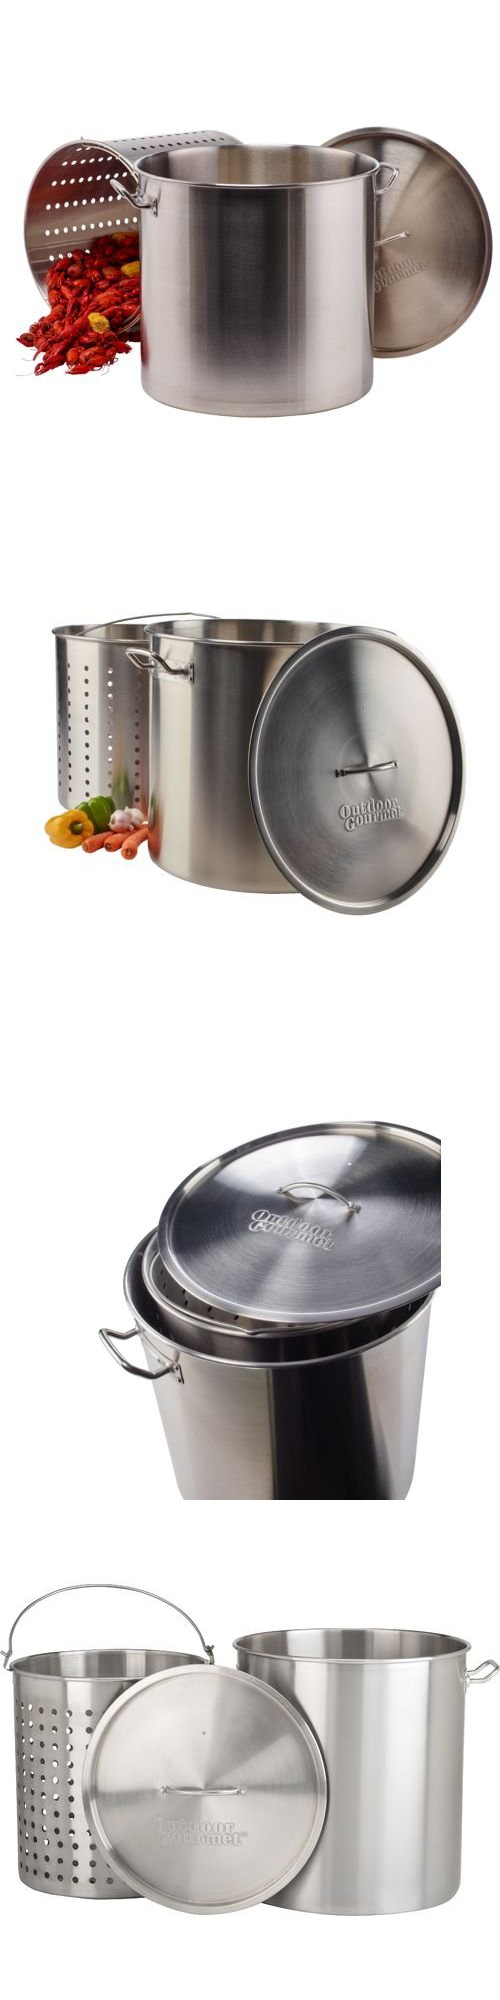 Outdoor Gourmet Pro 100 Qt Stainless Steel Pot With Strainer